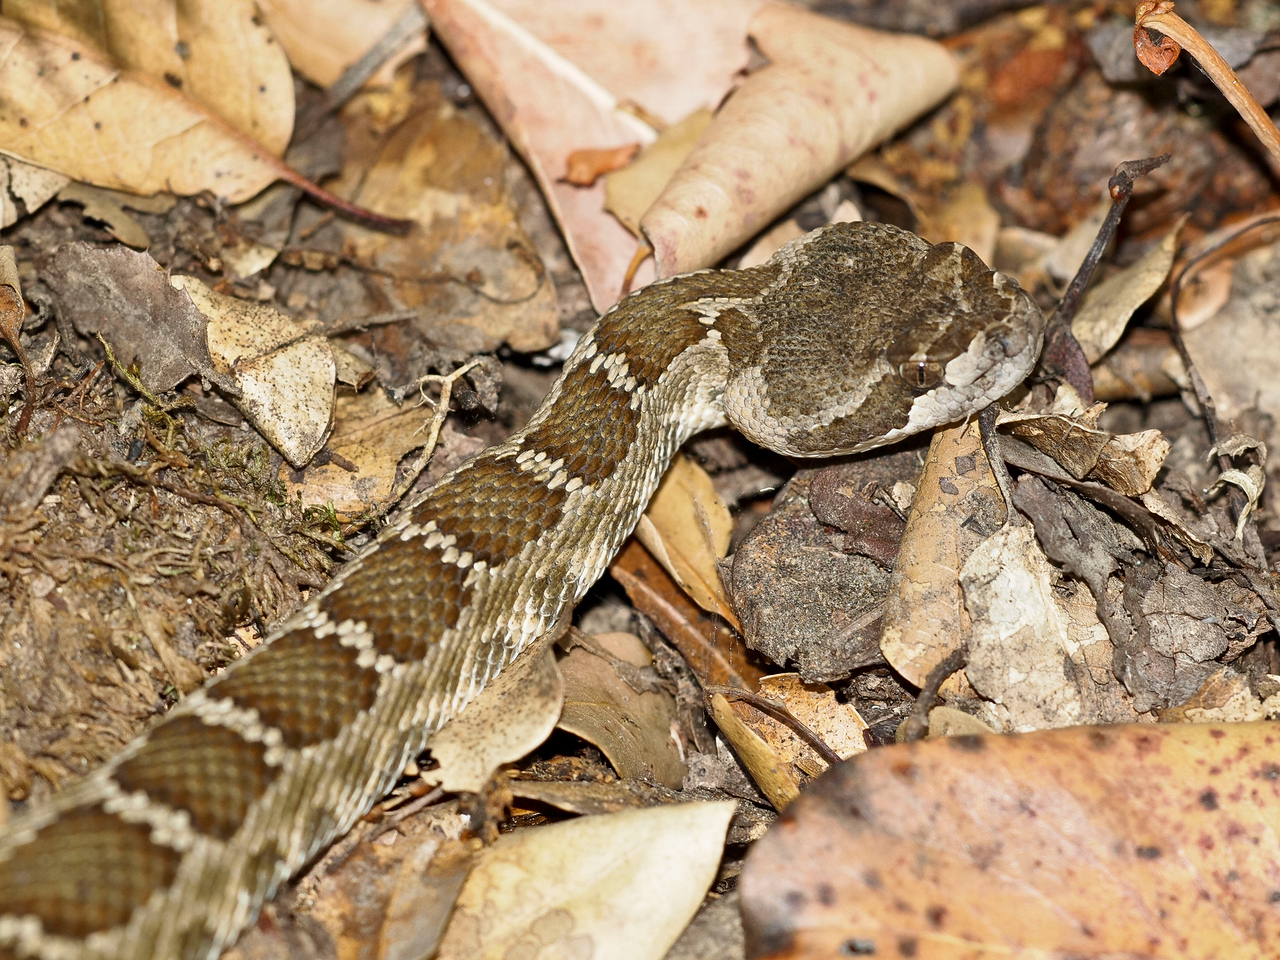 Close-up of little rattler. Times like this make me glad for telephoto lenses! Monte Bello OSP.